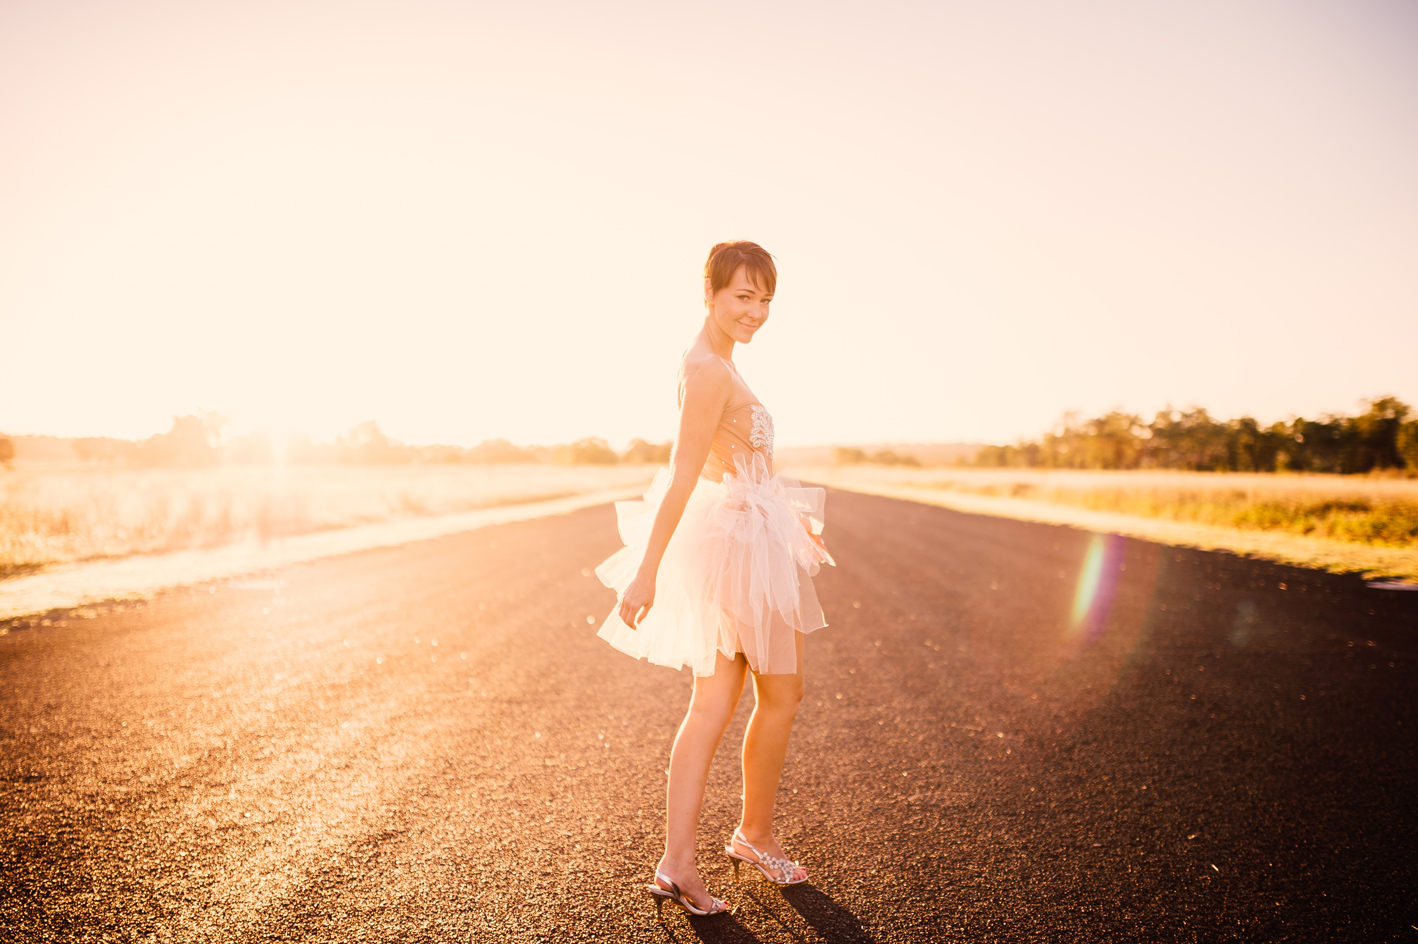 008-tanya-clint-jimbour-station-sophie-baker-photography